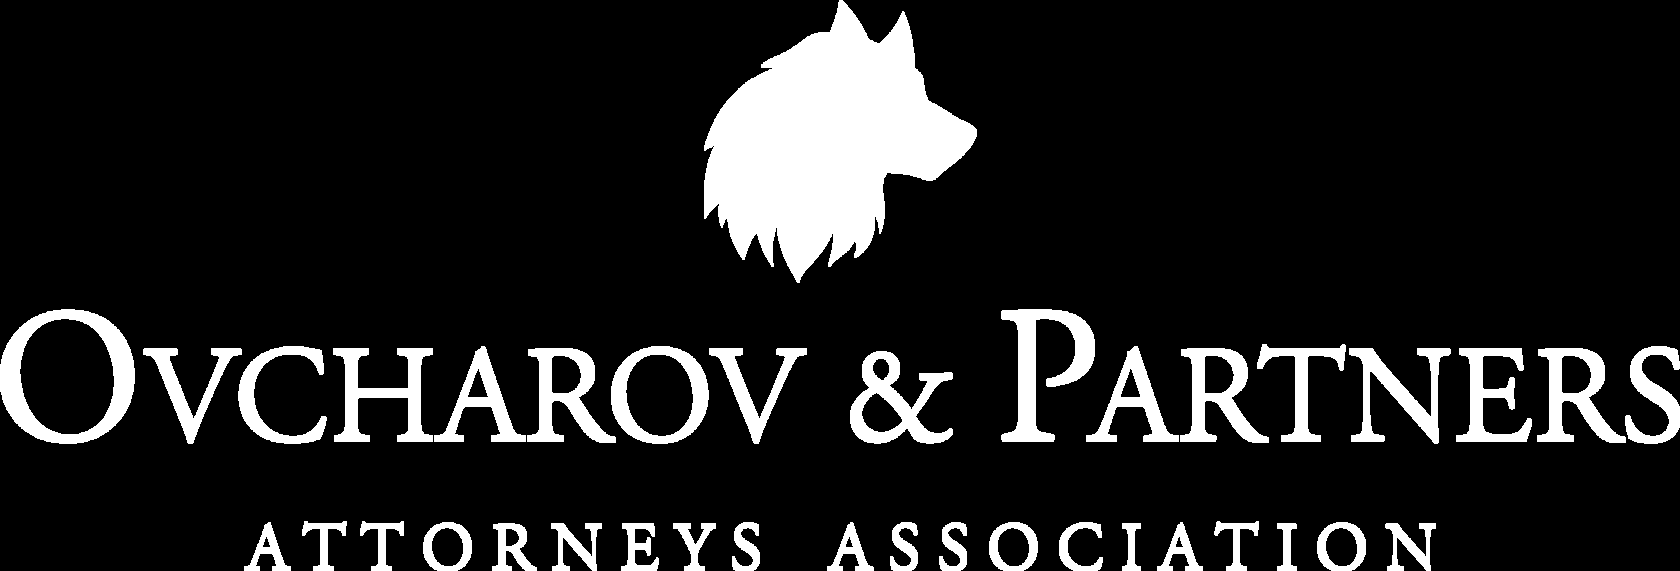 Ovcharov & Partners